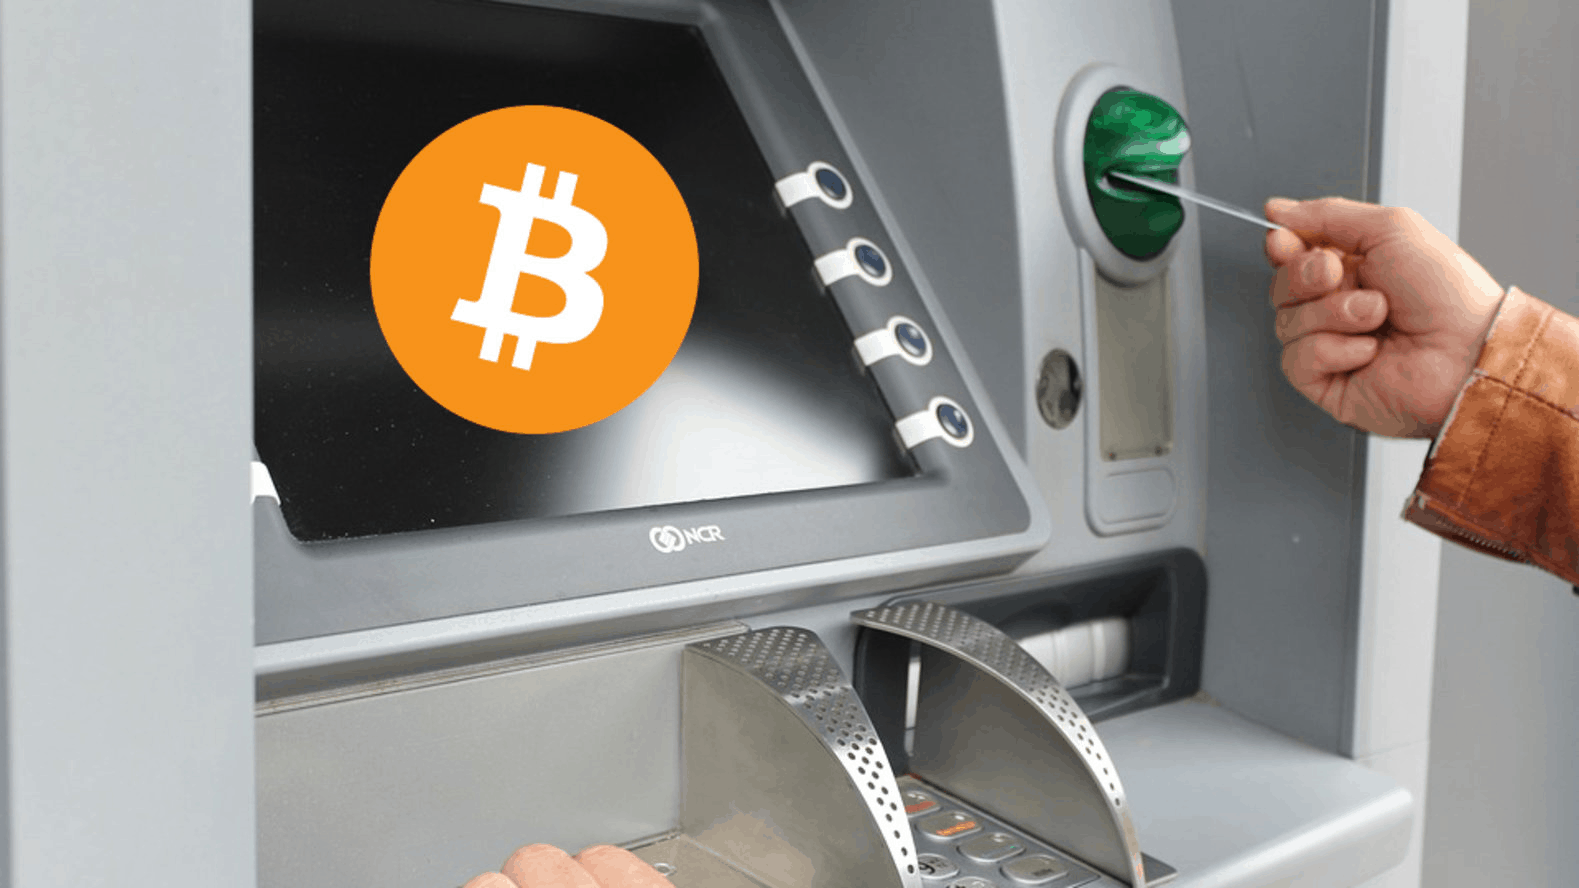 SC warns investors on using crypto ATMS